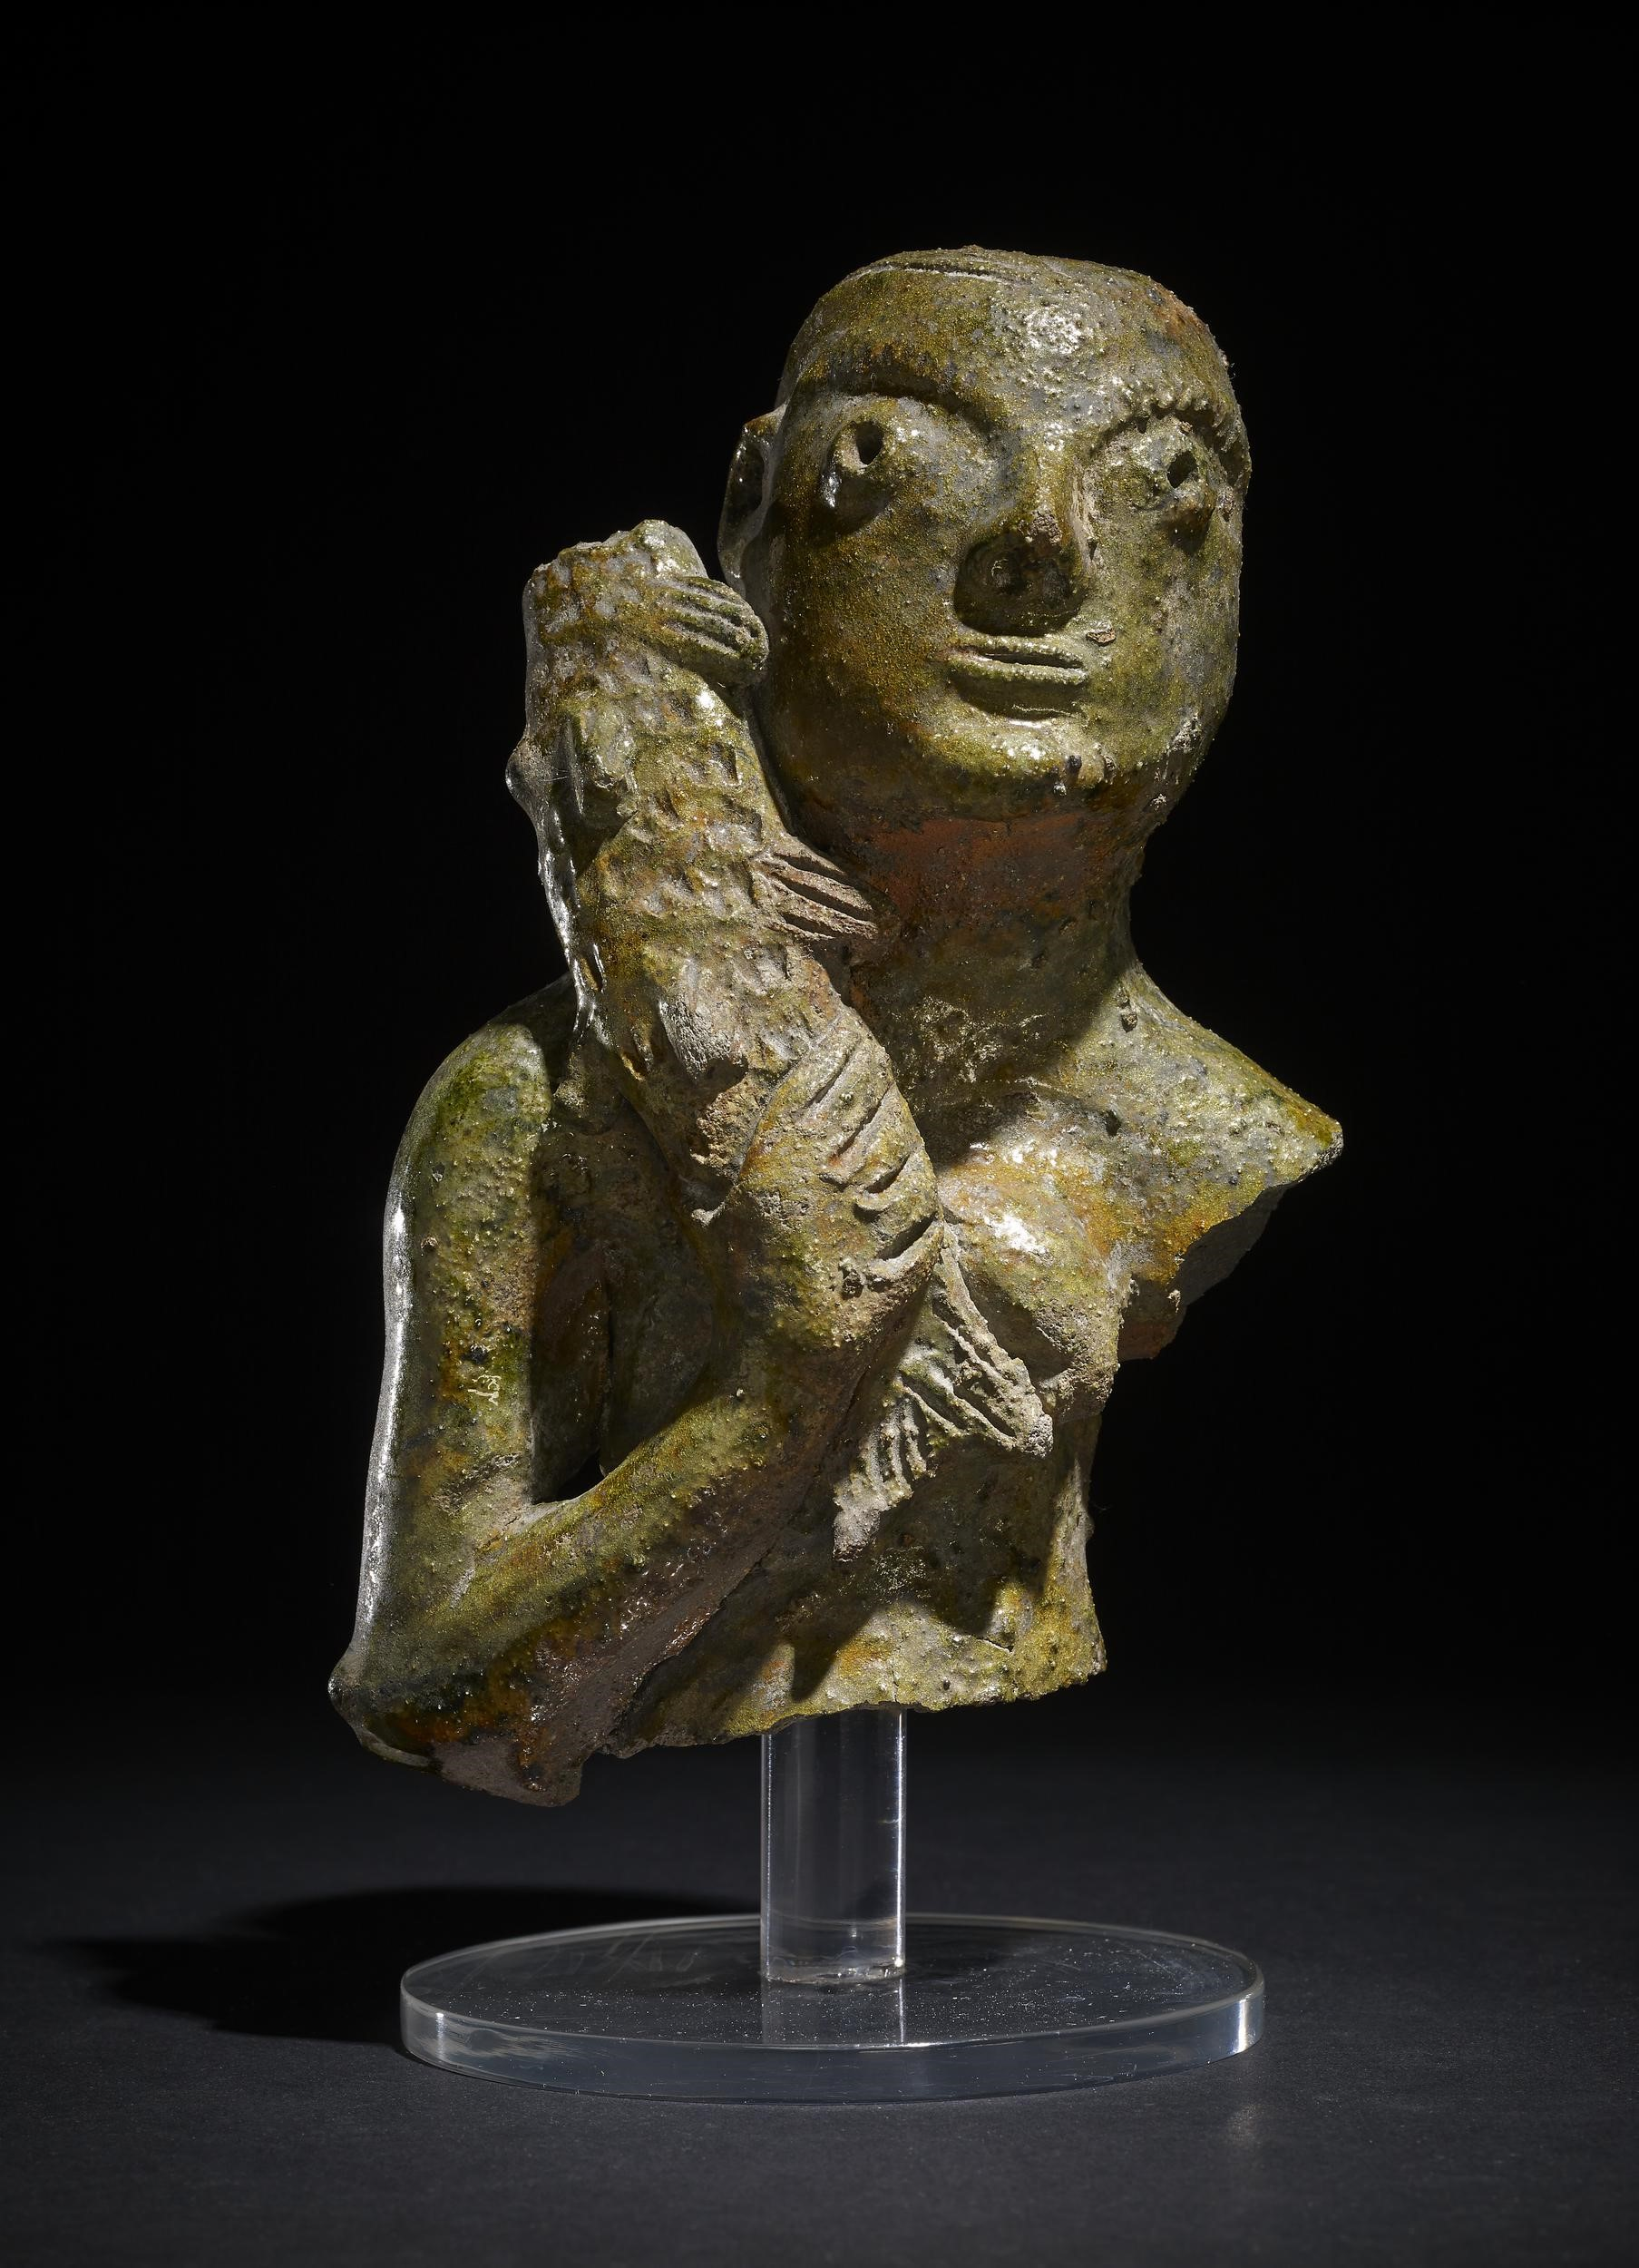 Pottery figurine with a green glaze. The figurine shows a woman's head, too and right arm. She has plaited hair carrying a fish on her shoulder.